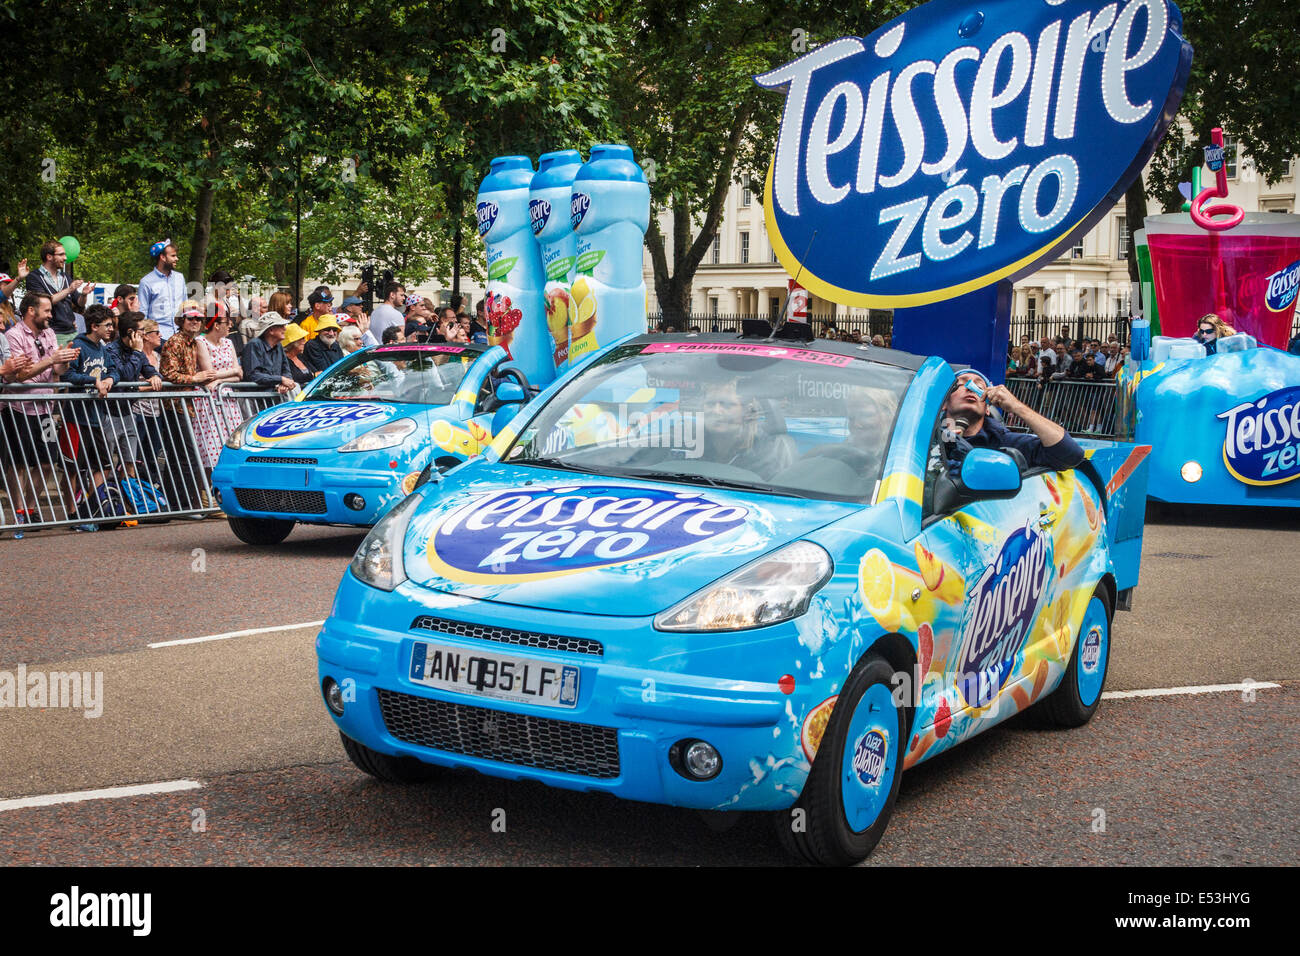 Sponsors' vehicles precede the arrival of the riders in the Tour De France 2014 third stage in London, UK - Stock Image